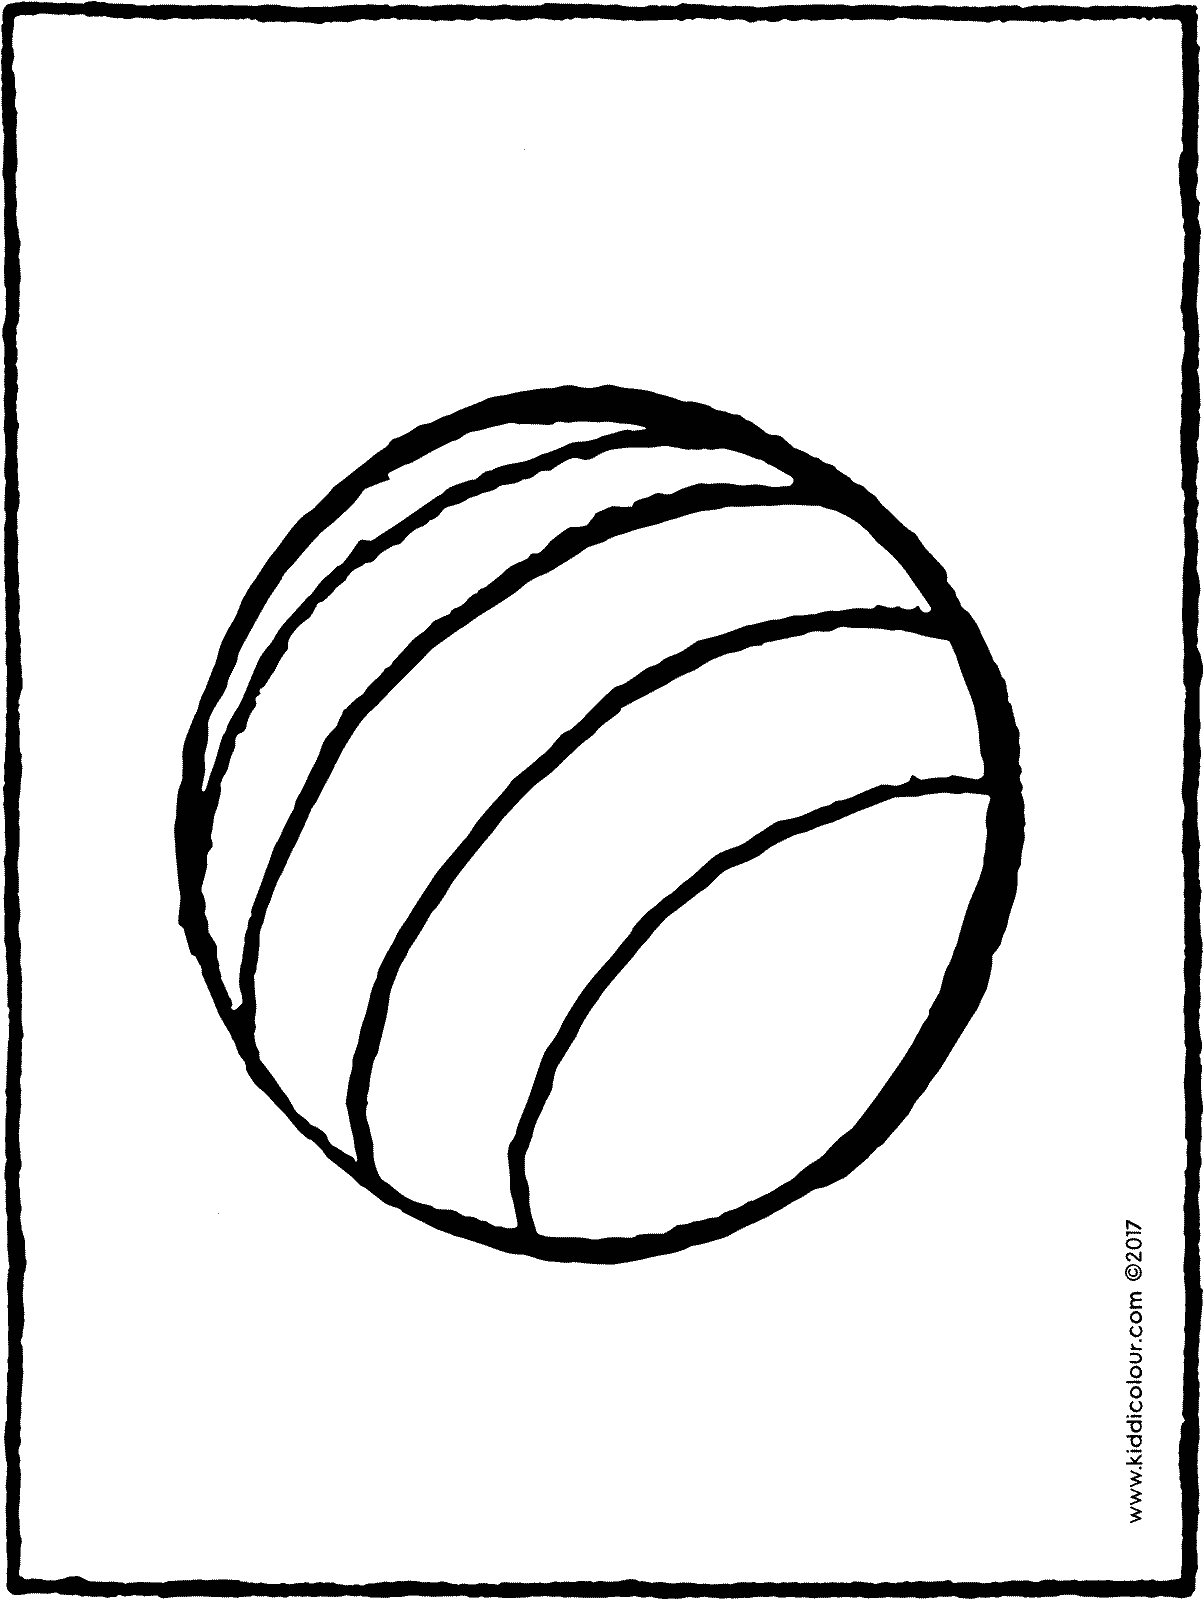 ball colouring page page drawing picture 02H